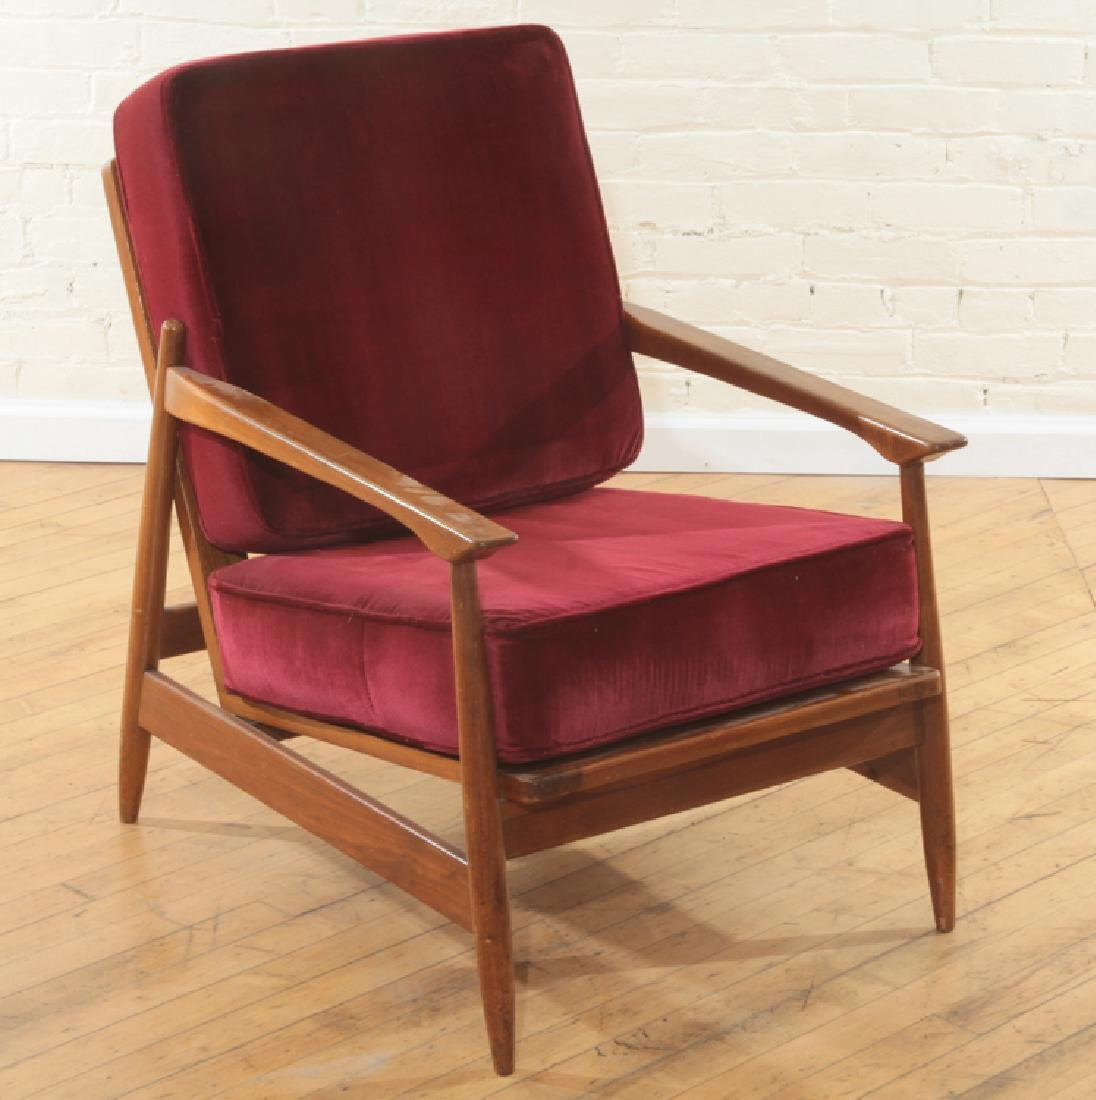 PAIR MAHOGANY DANISH OPEN ARM CHAIRS C.1960 - 2